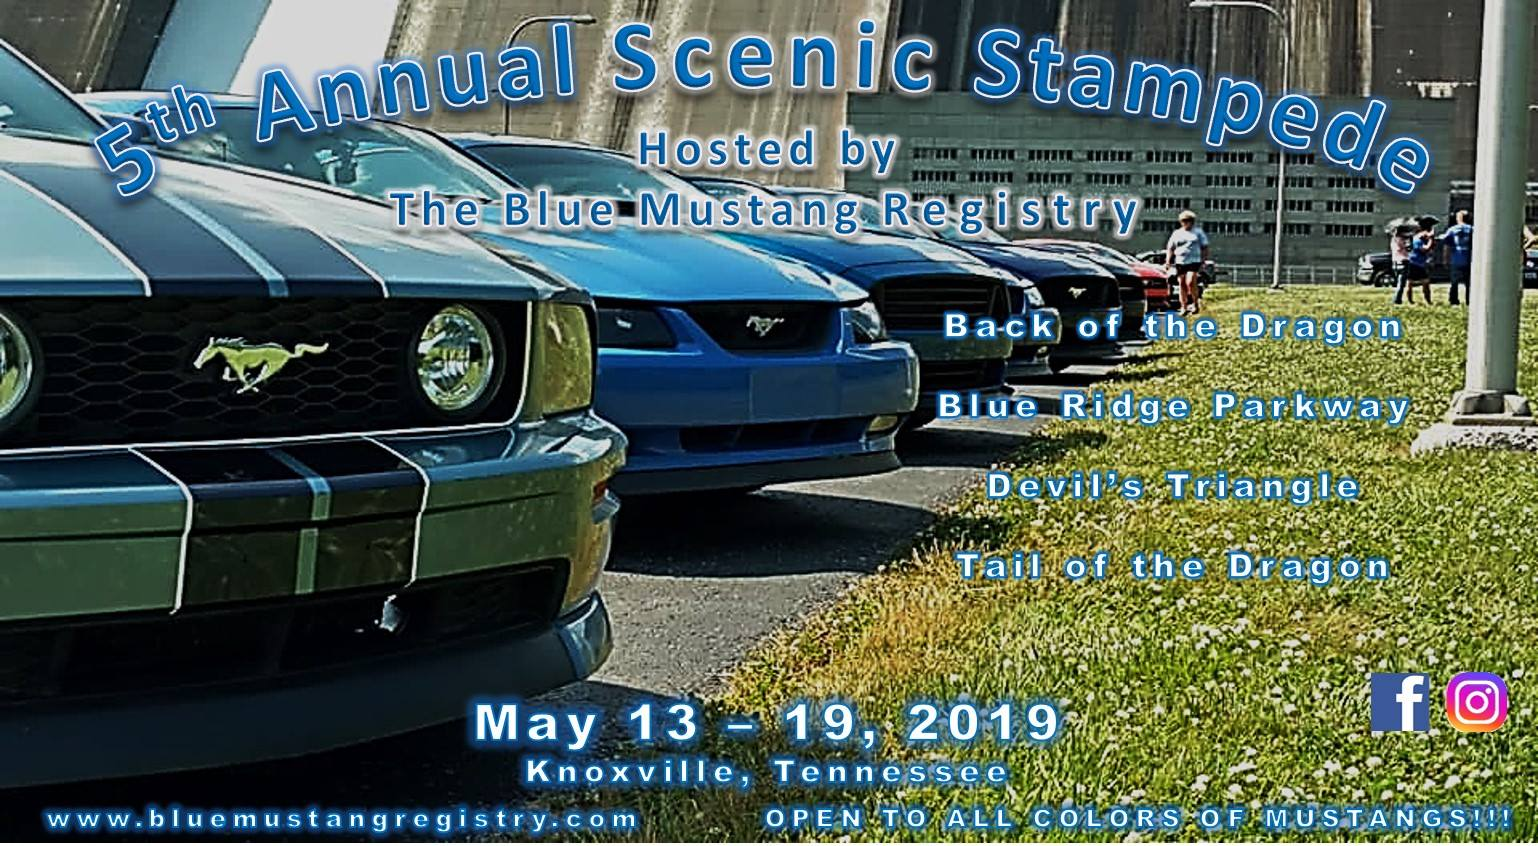 5th Annual Scenic Stampede